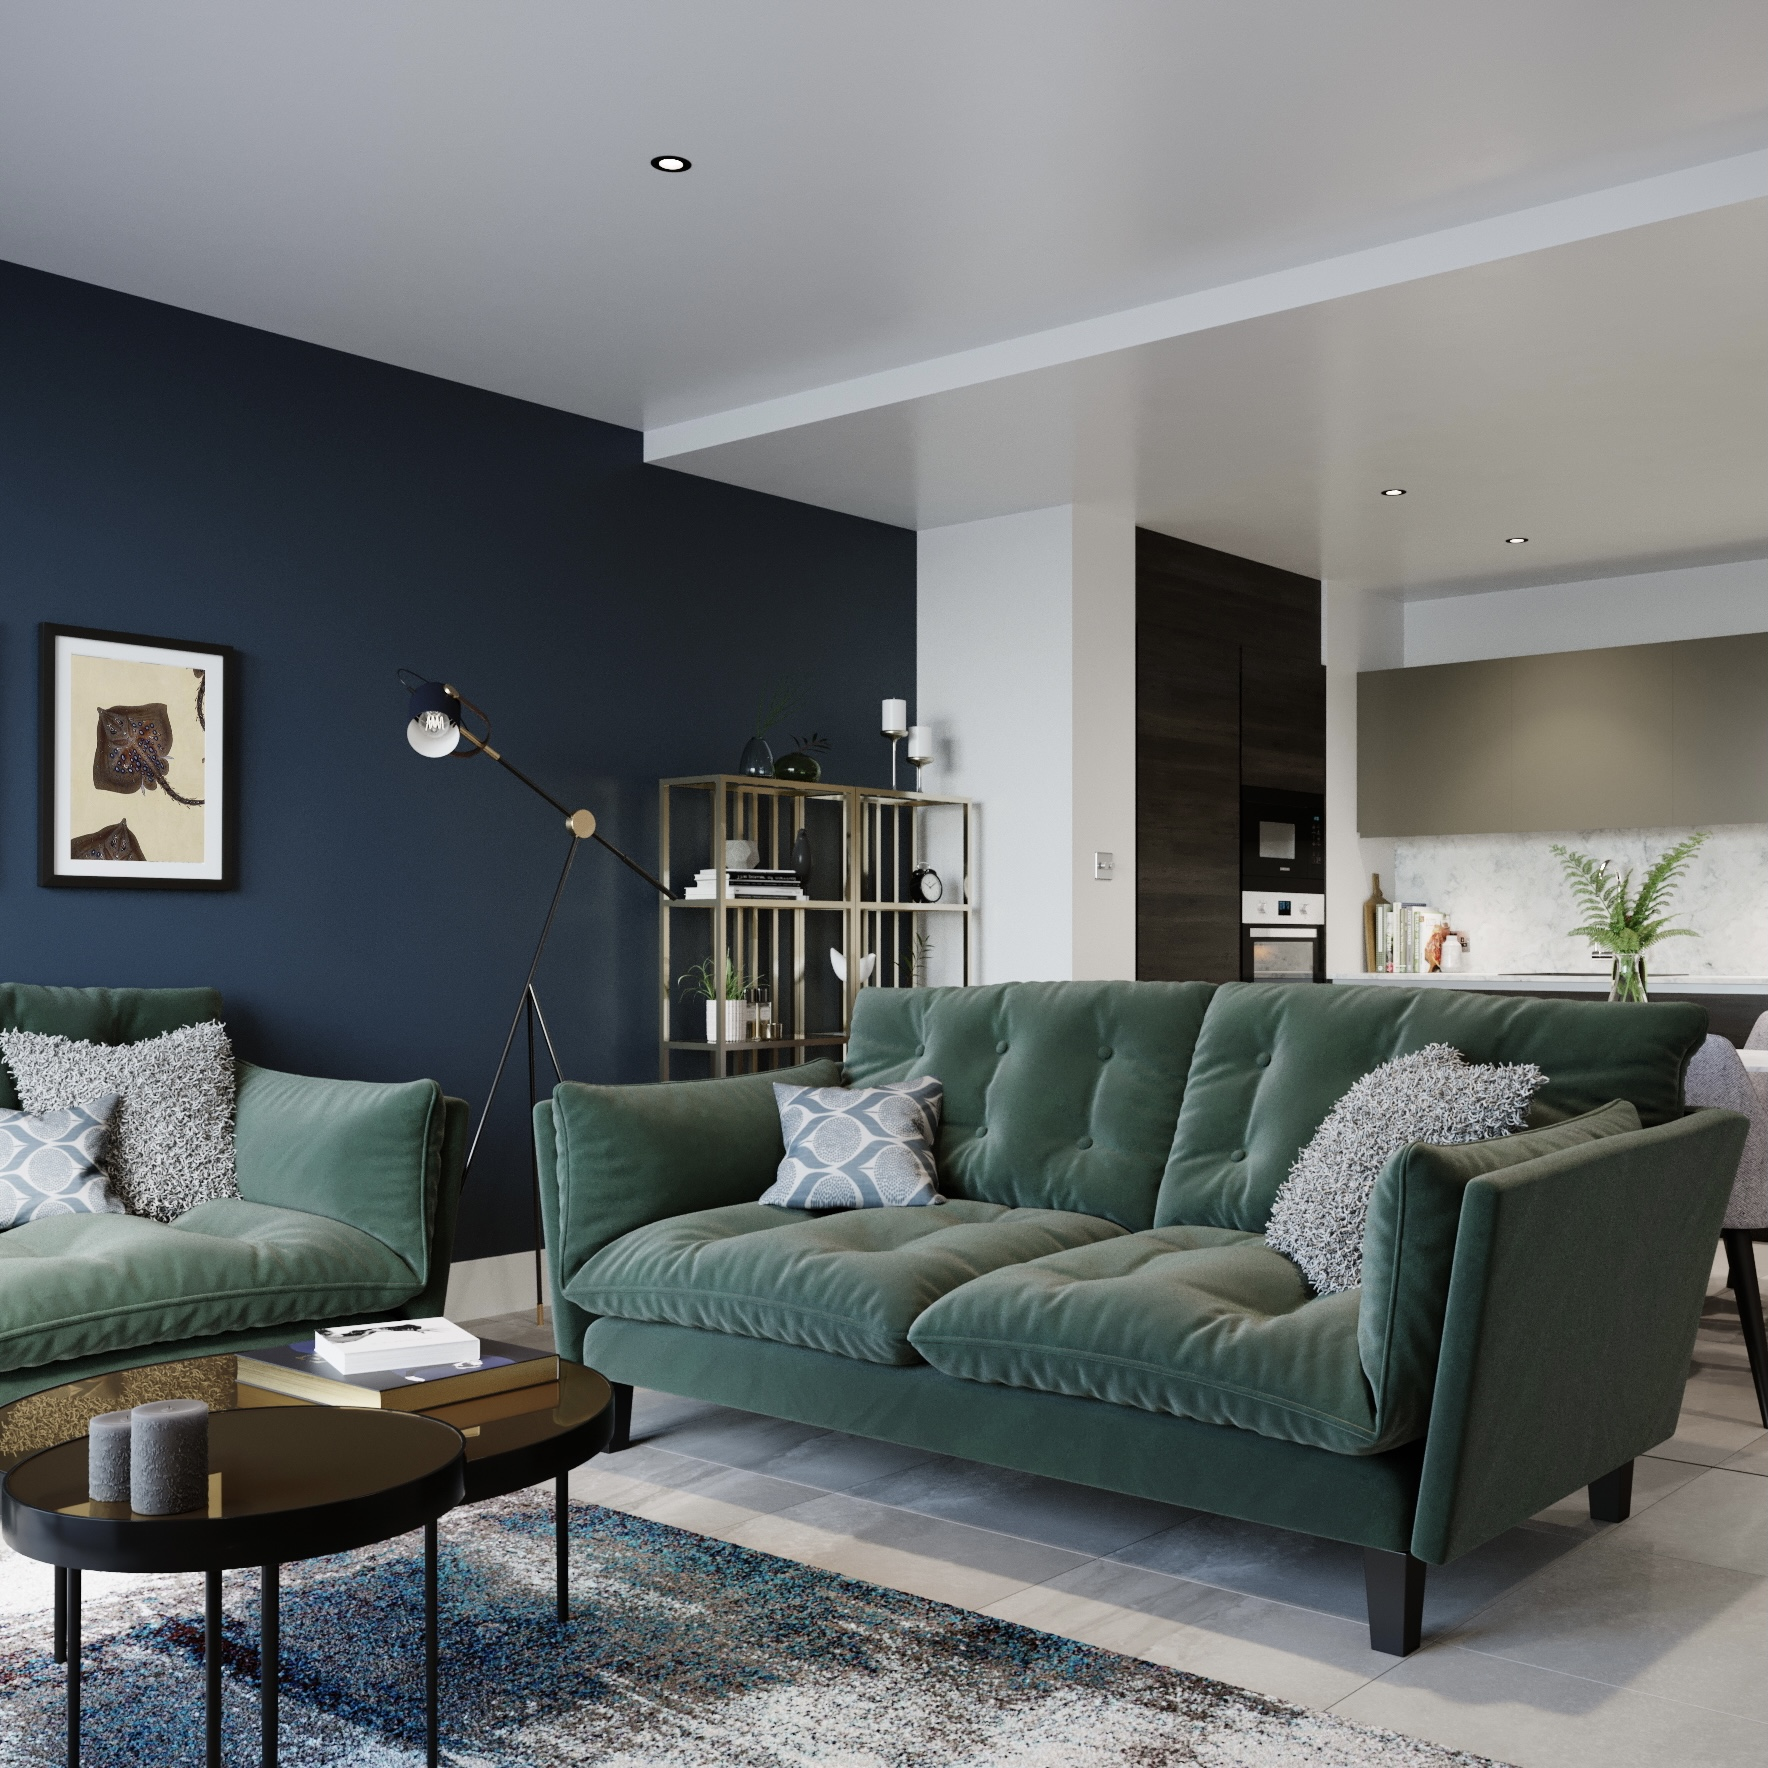 Image of apartment with green sofa and open plan kitchen in back